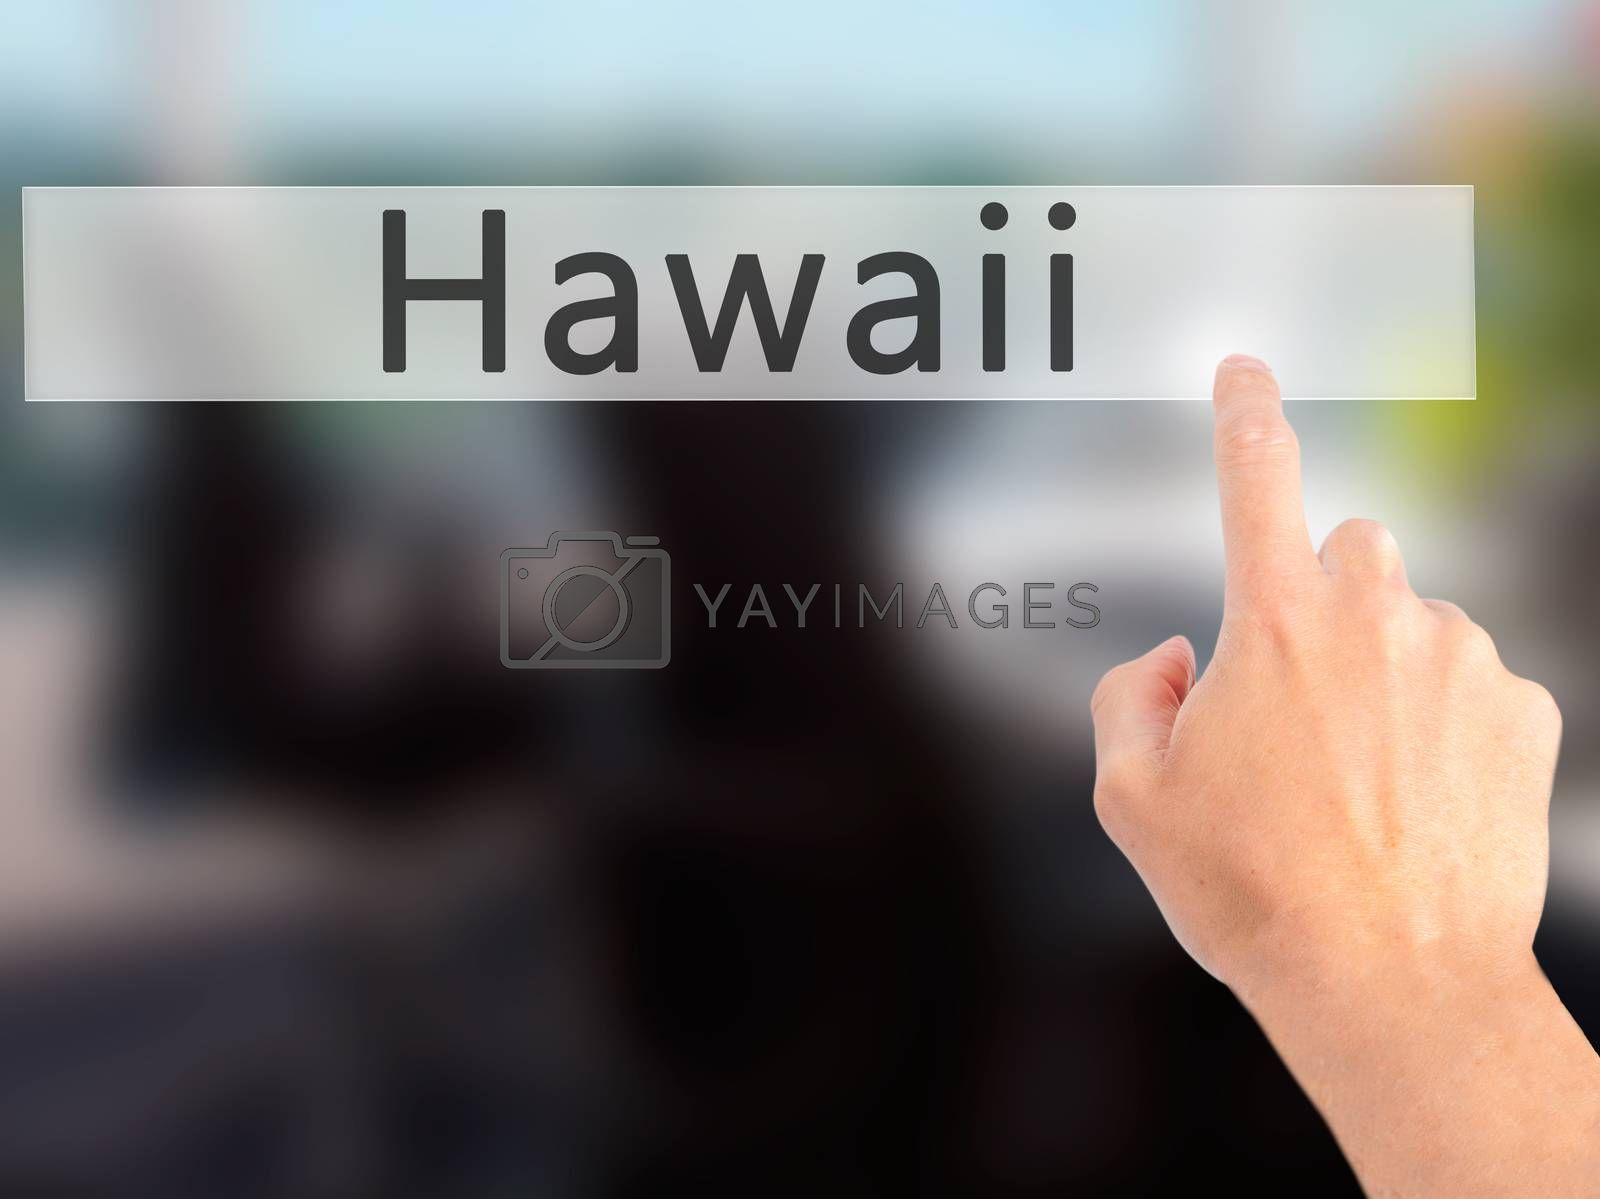 Hawaii - Hand pressing a button on blurred background concept on by netsay.net